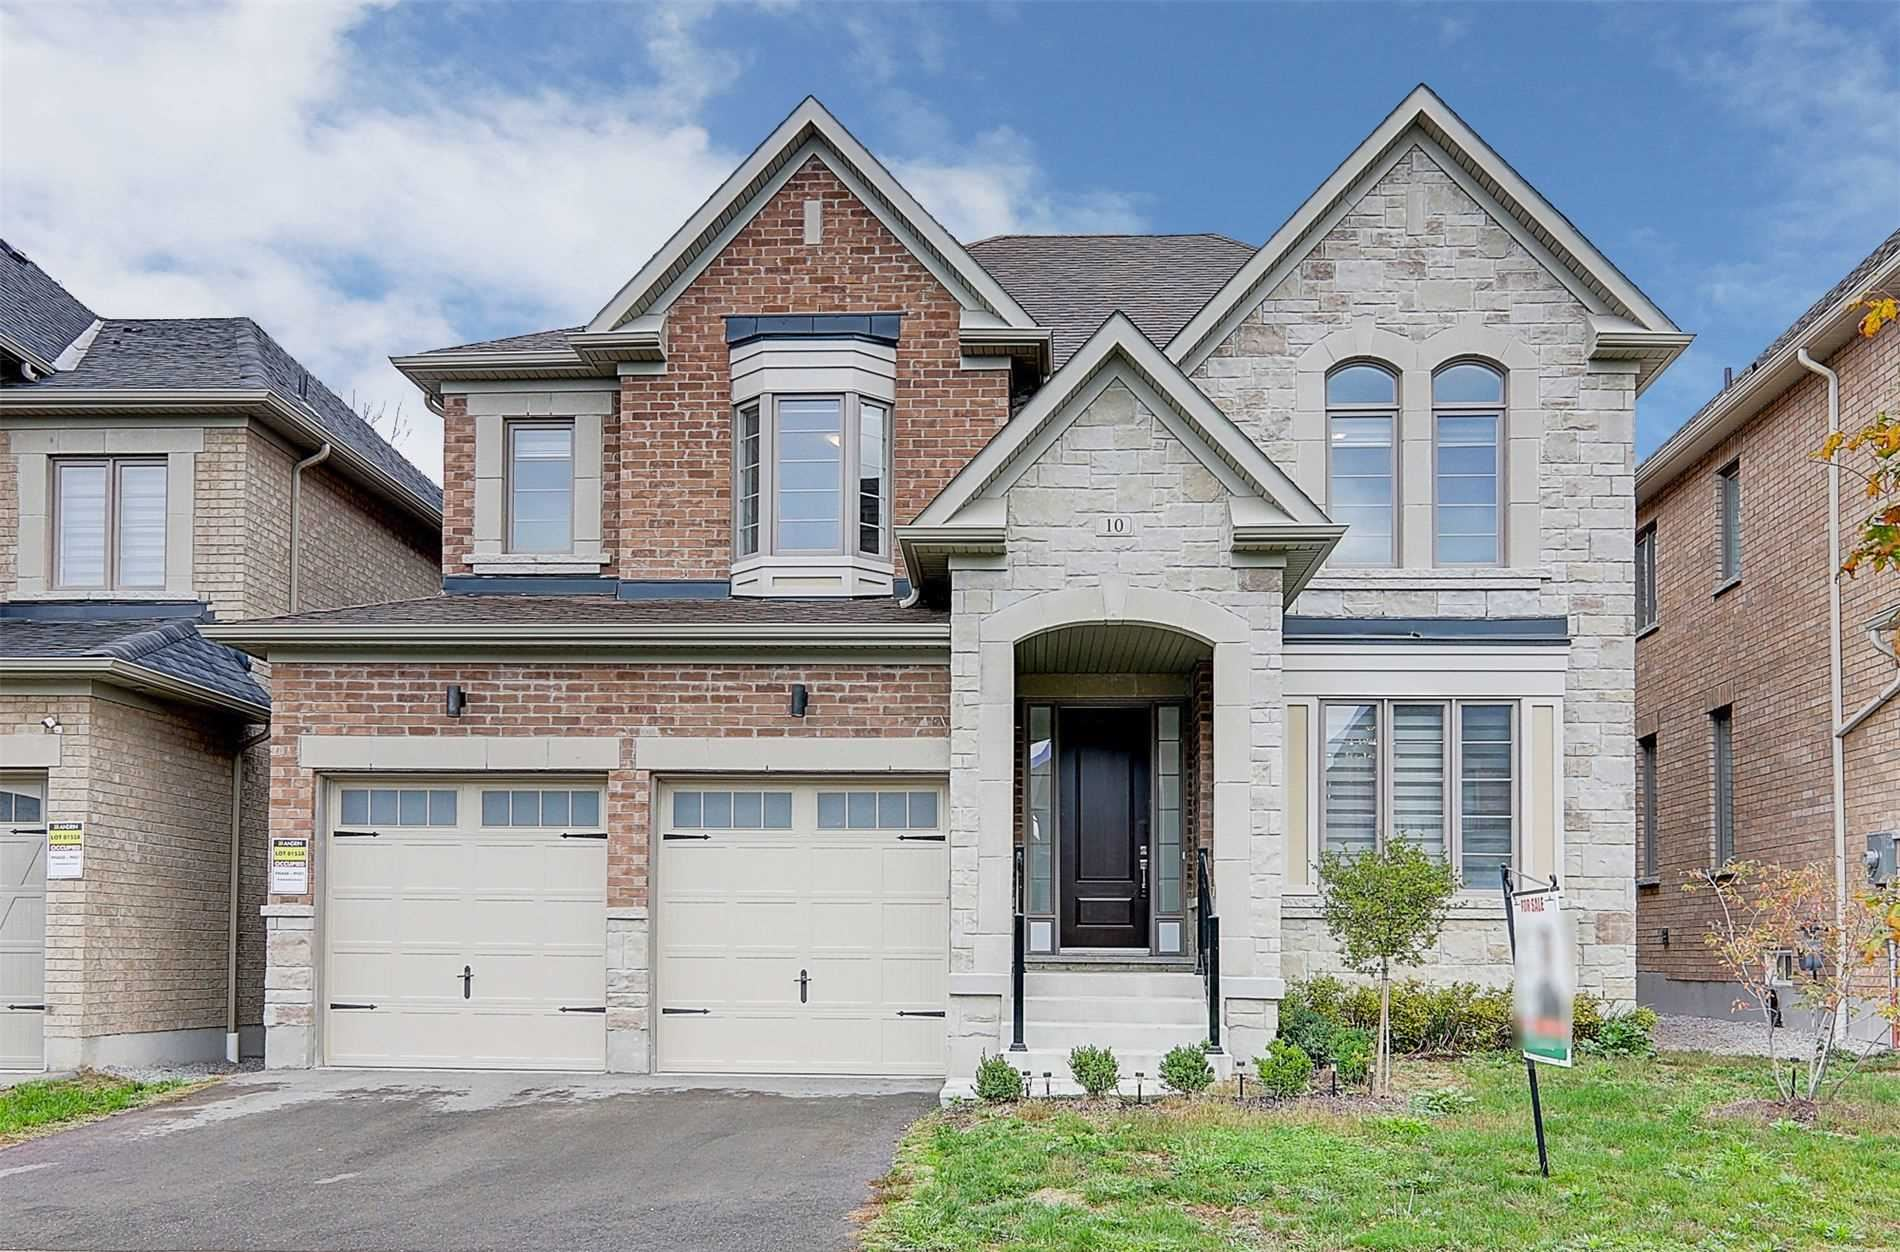 10 Micklefield Ave, Whitby, ON L1P 0C3 - MLS#: E5404330